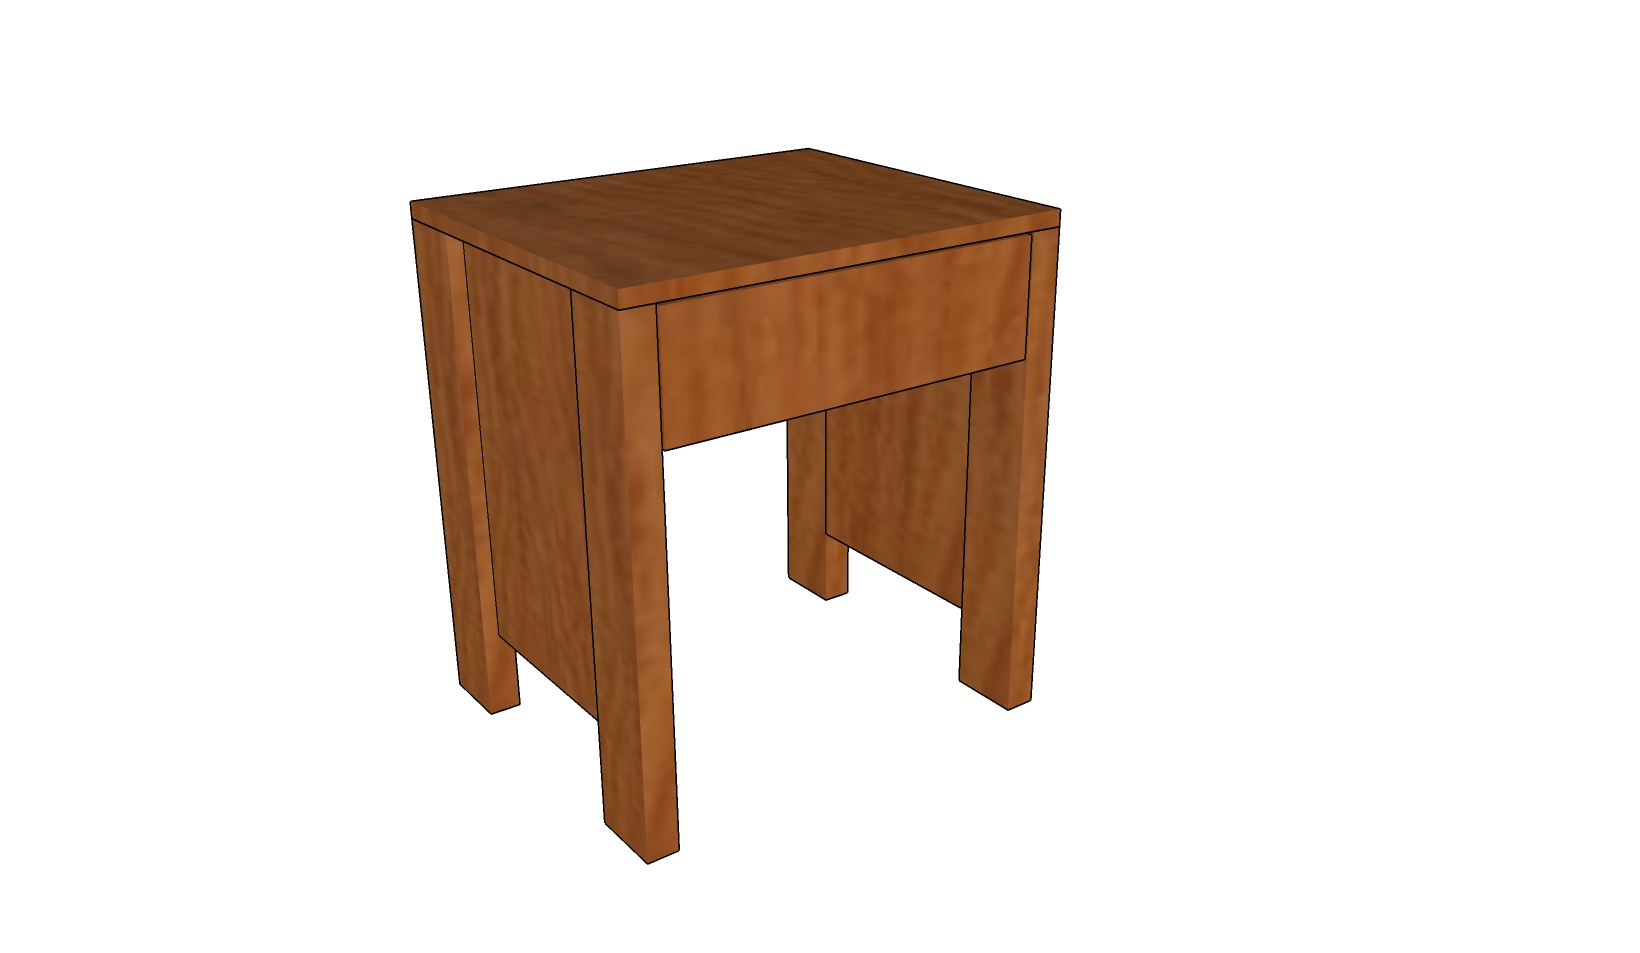 ... bedside table How to build a bedside table How to build a coffee table